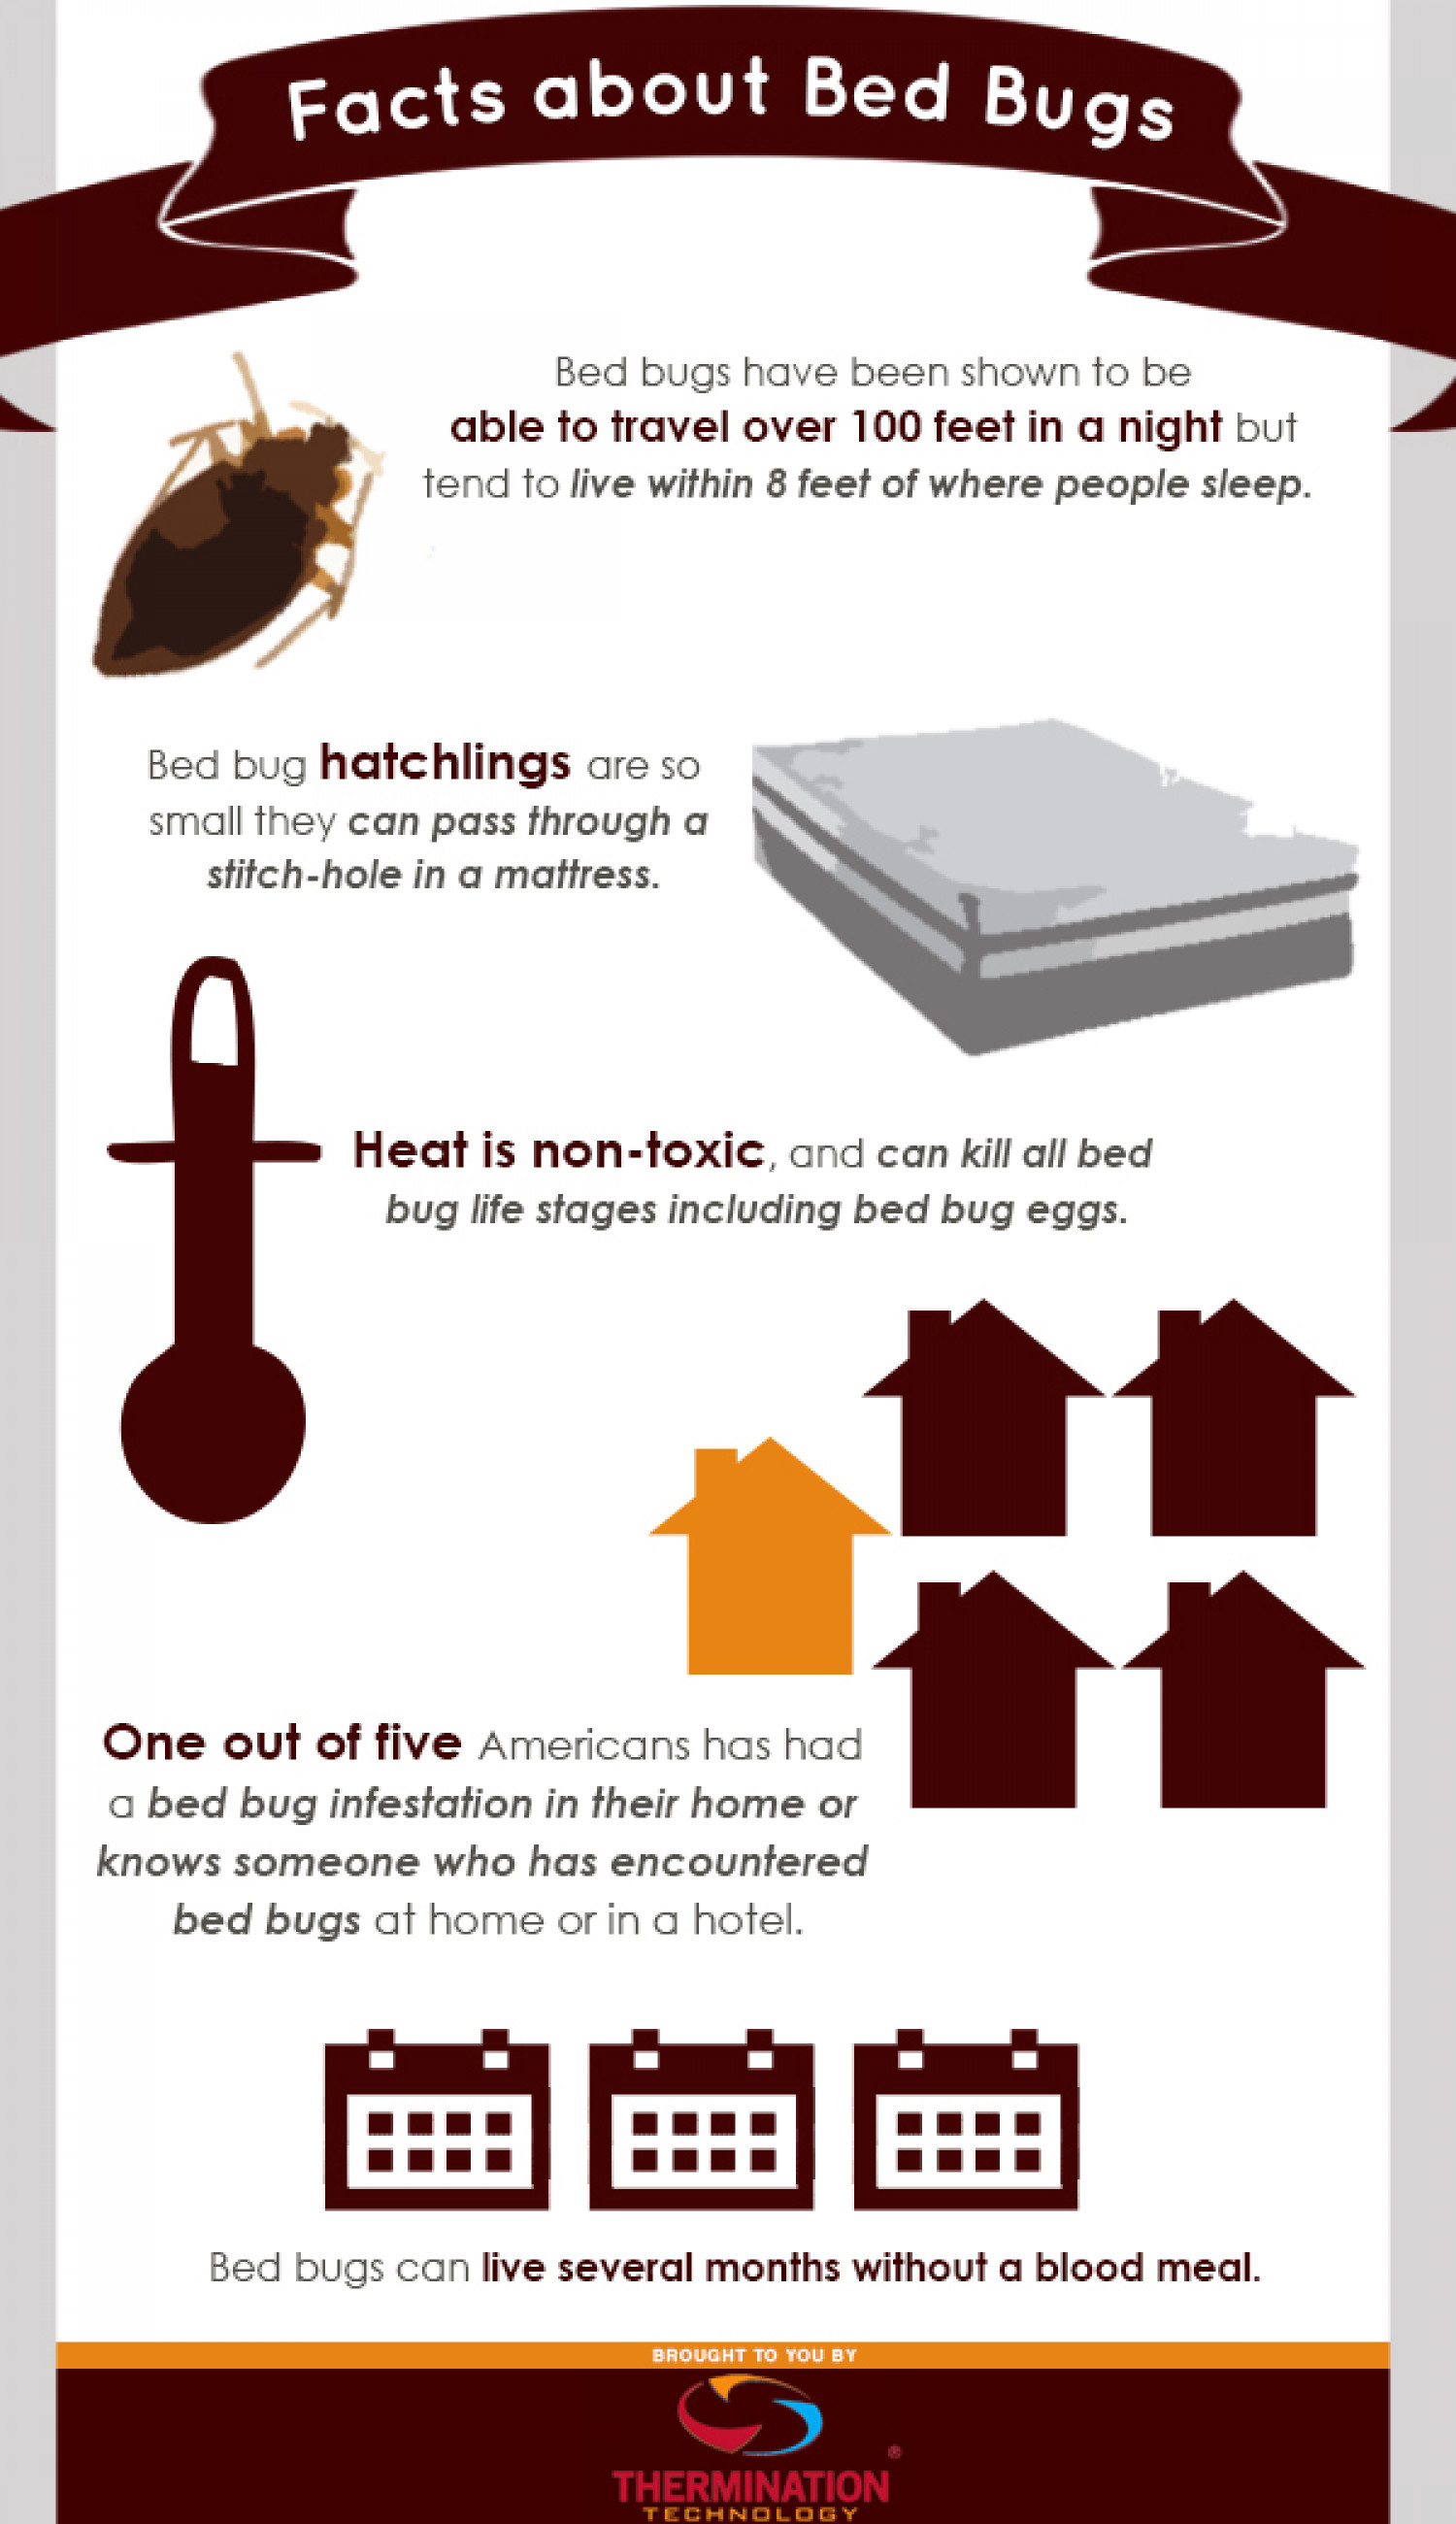 Facts About Bed Bugs Infographic